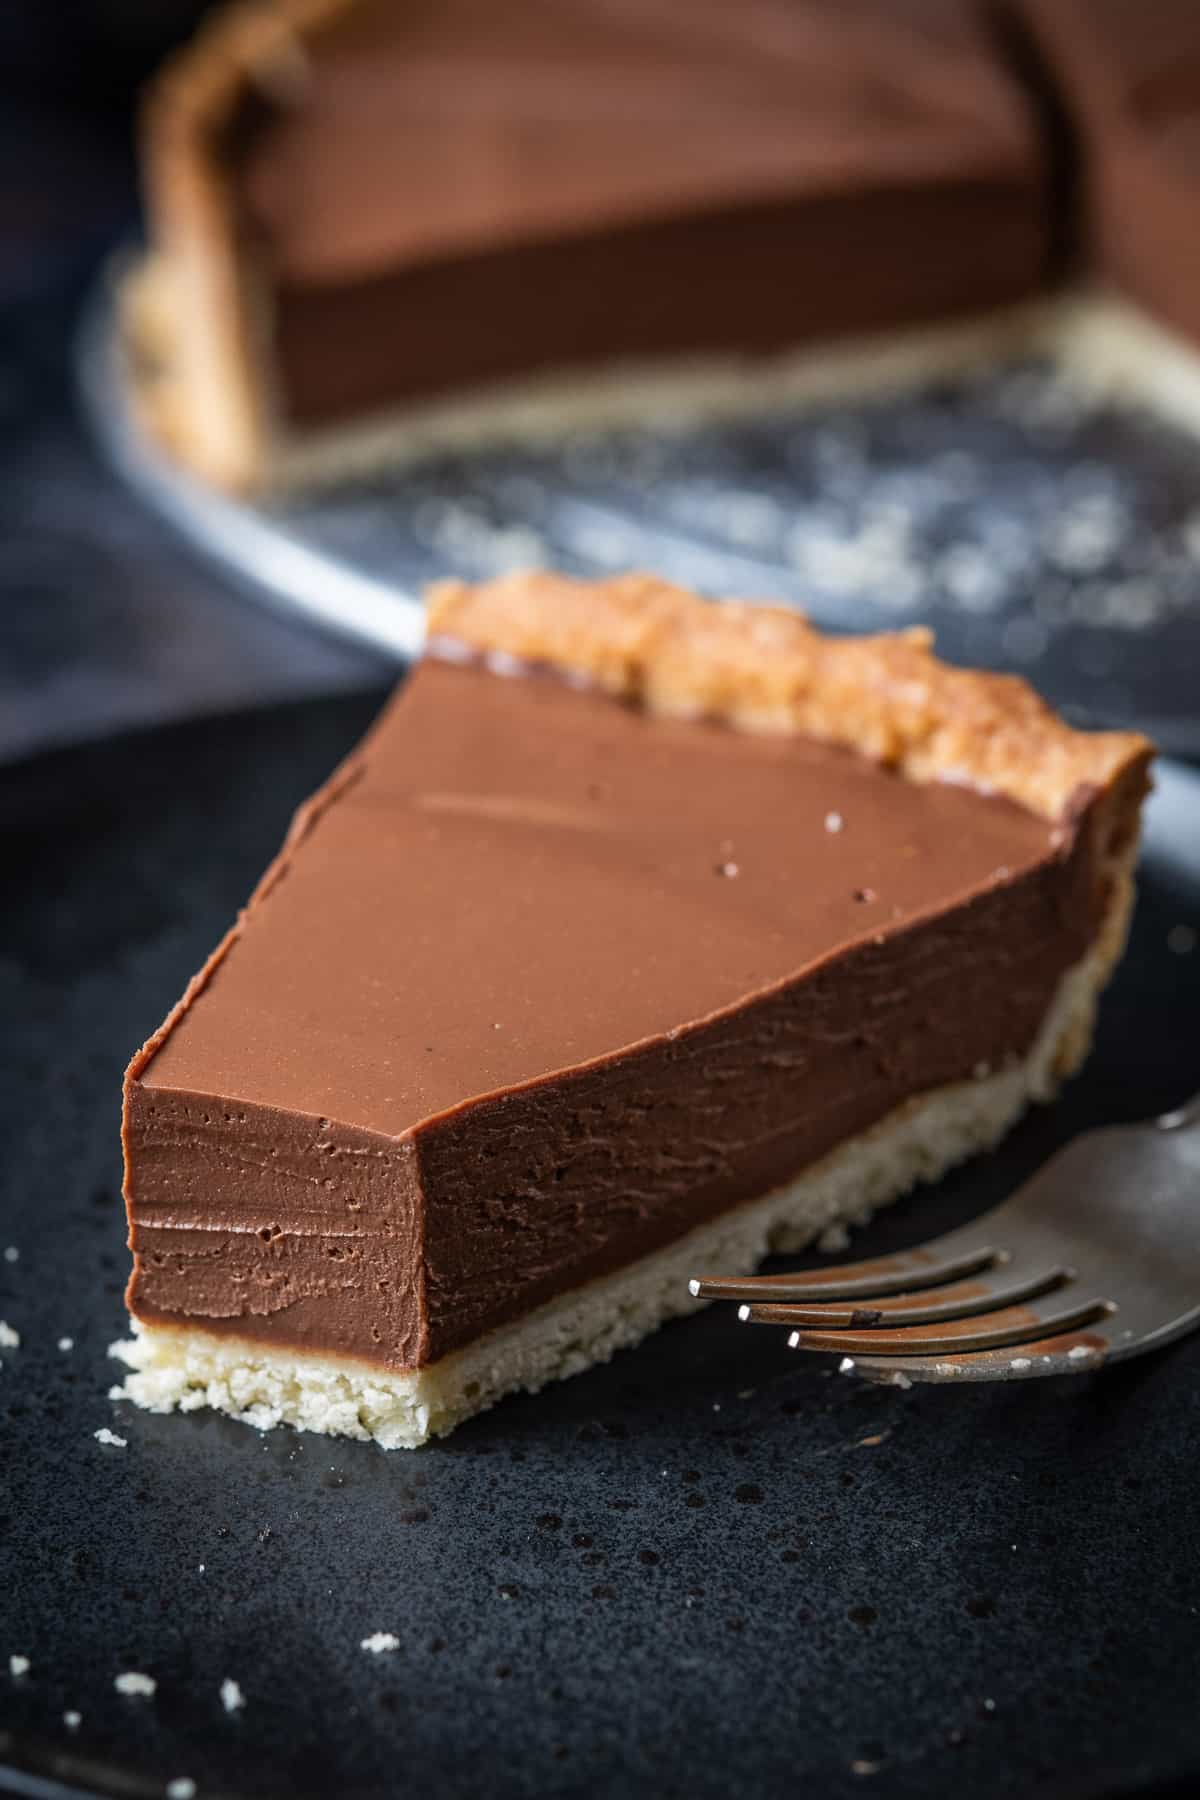 Close up of a slice of vegan peanut butter chocolate tart with a forkful removed.